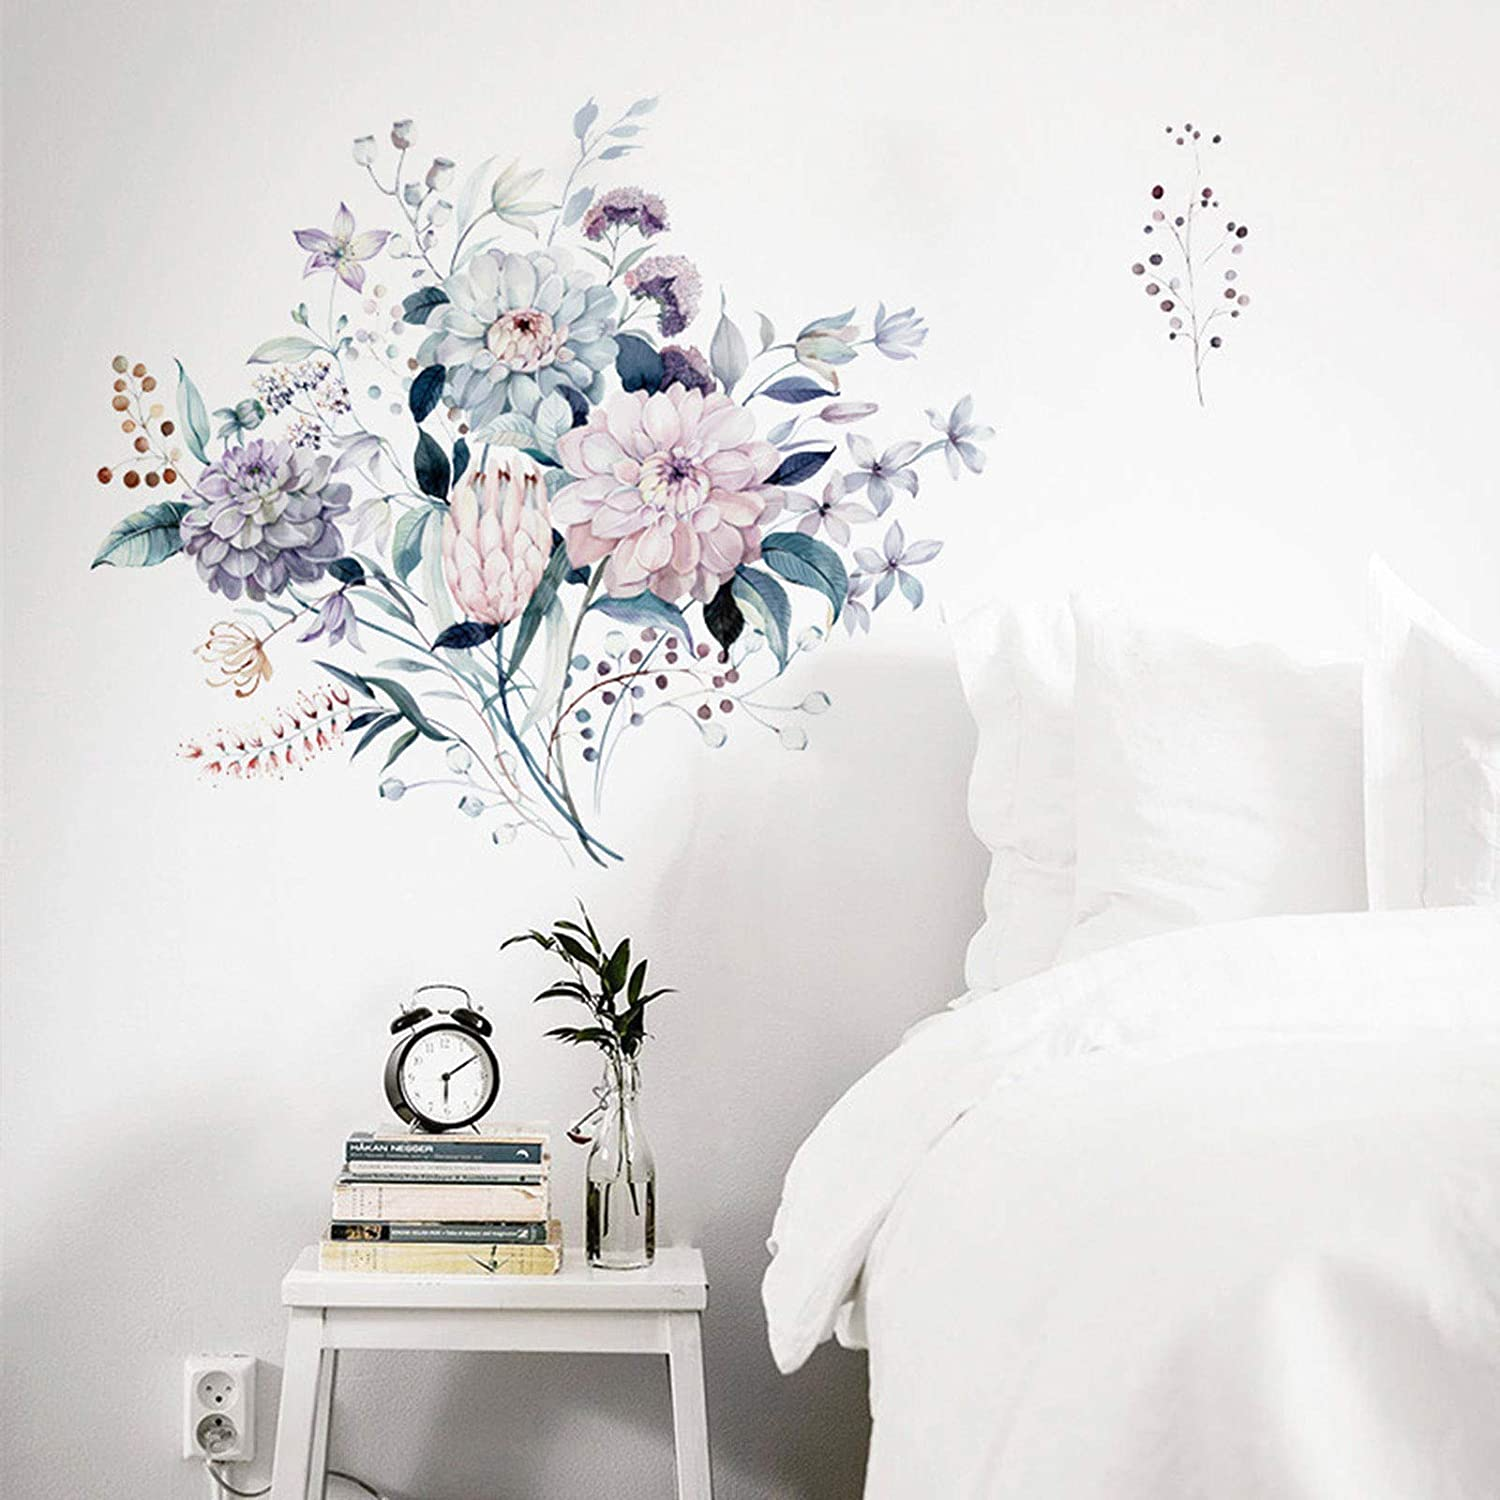 TIICA Purple Pink Flowers Wall Decals, Watercolor Dahlia Blossom Removable Colorful Floral Peel and Stick Wall Art Stickers for Bedroom Living Room Kitchen Home Decor